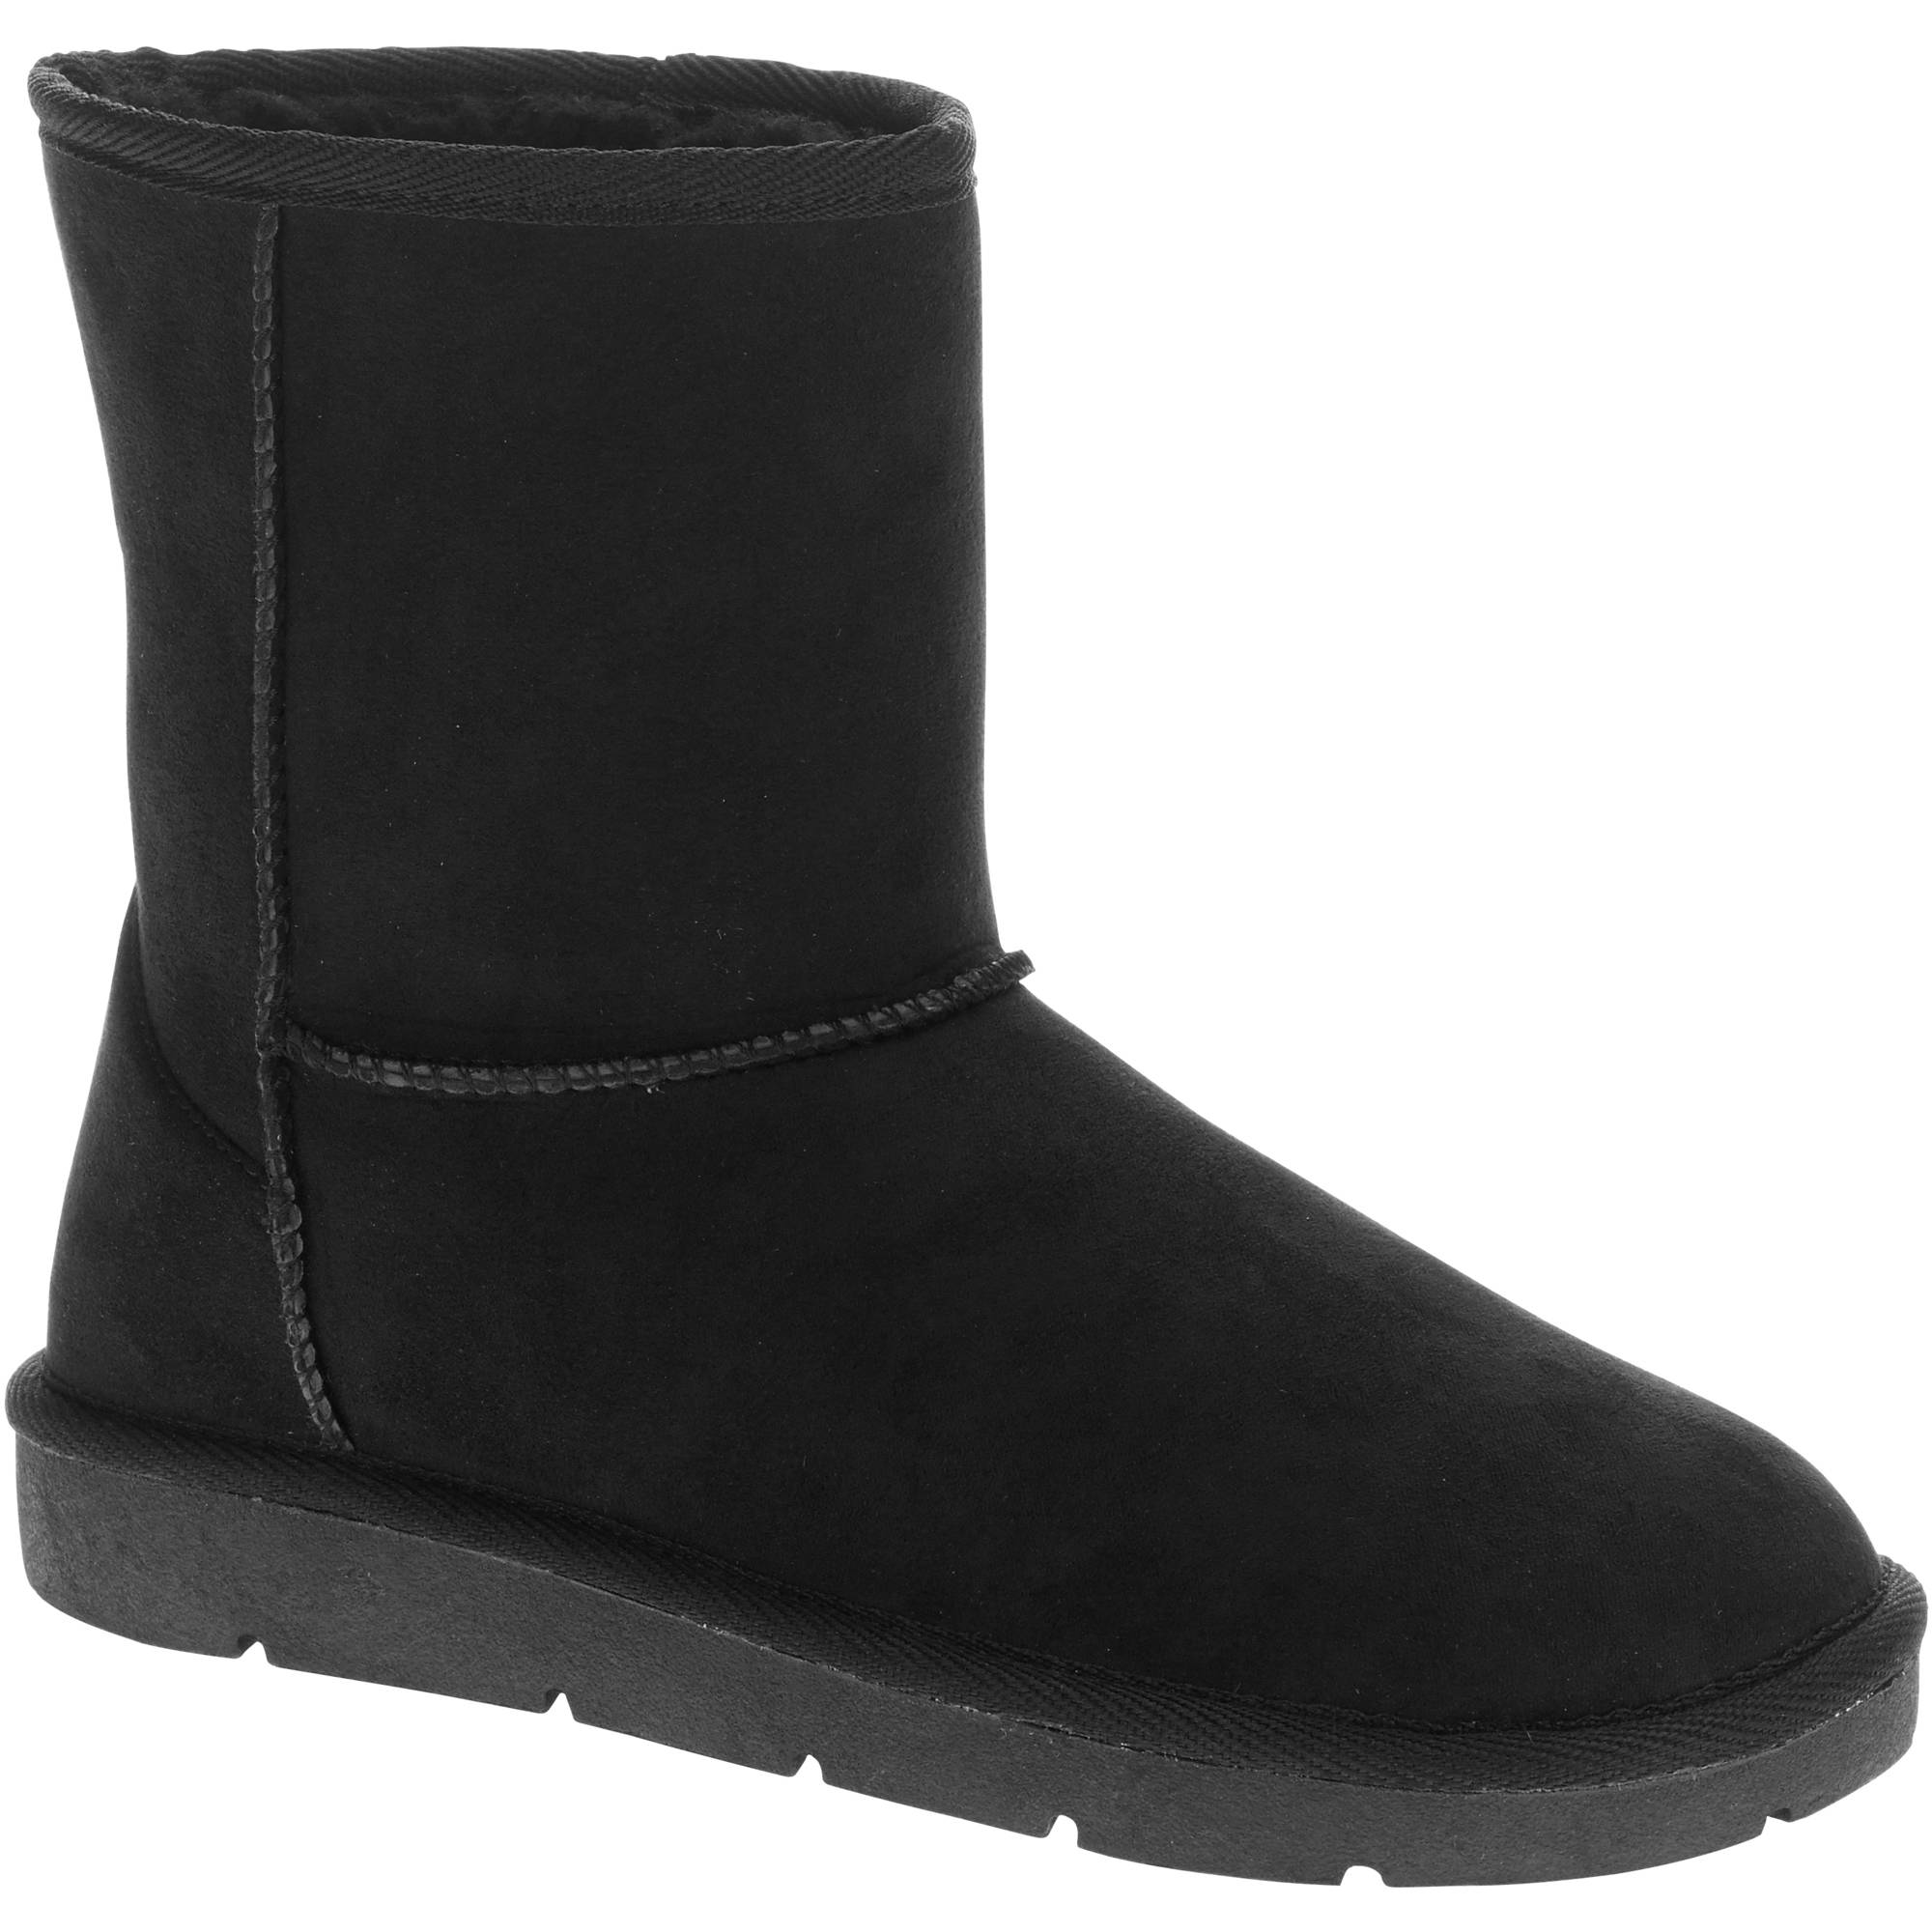 Faded Glory Women's Shearling Lug Sole Boot -Exclusive